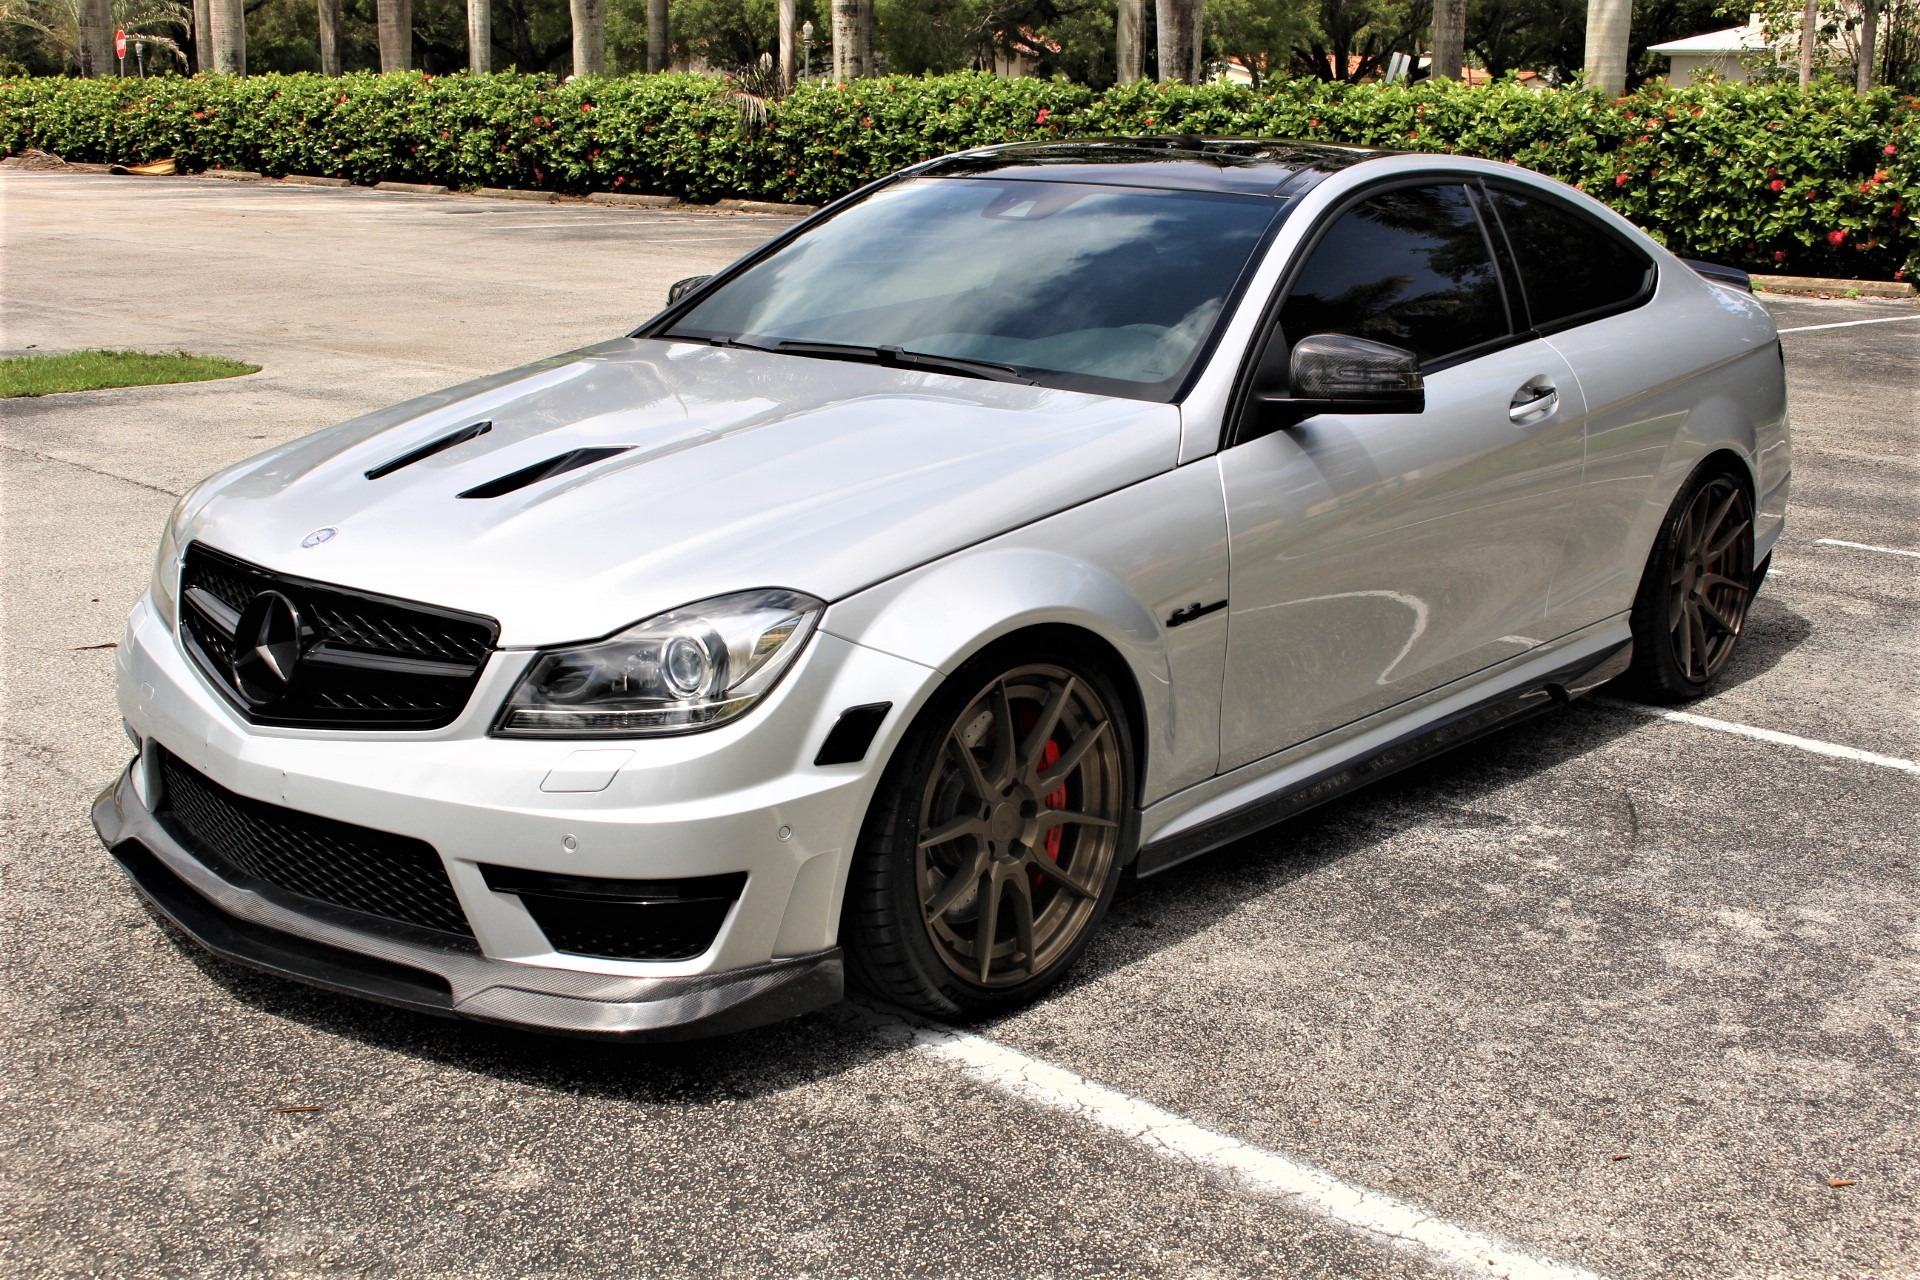 Used 2015 Mercedes-Benz C-Class C 63 AMG 507 Edition for sale Sold at The Gables Sports Cars in Miami FL 33146 4